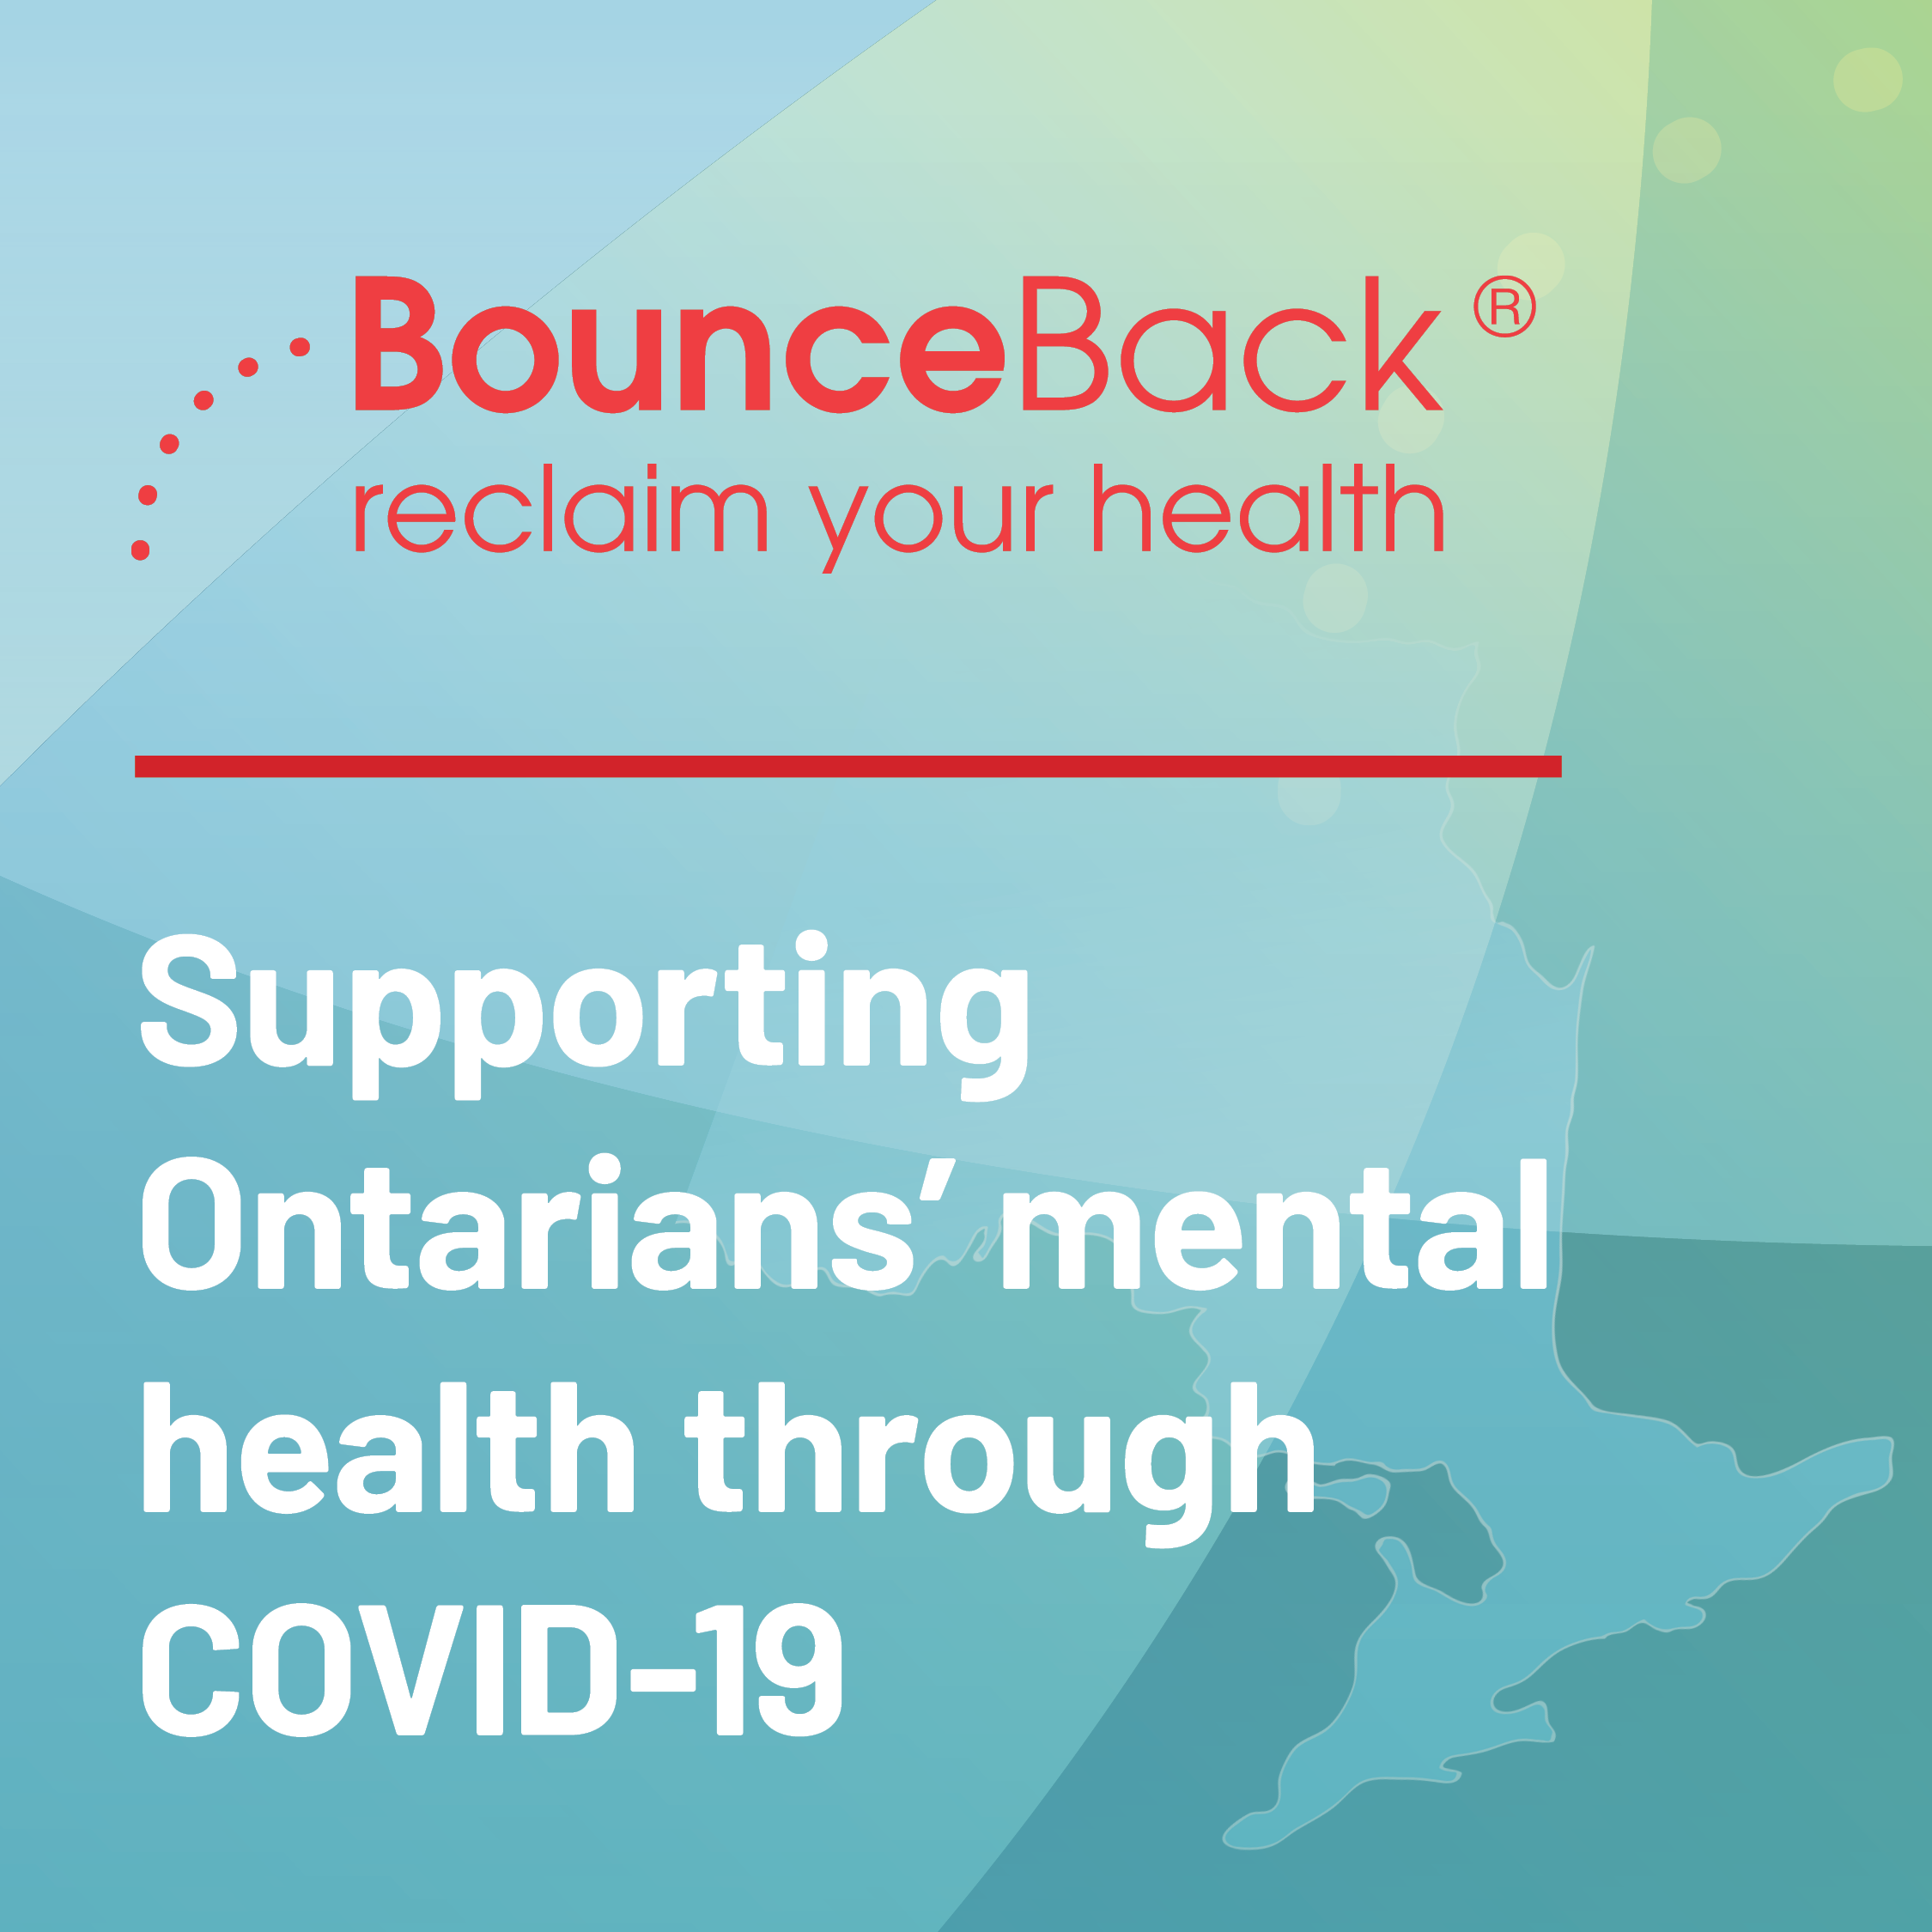 BounceBack Offers Quick Tips to Support Your Mental Health During COVID-19